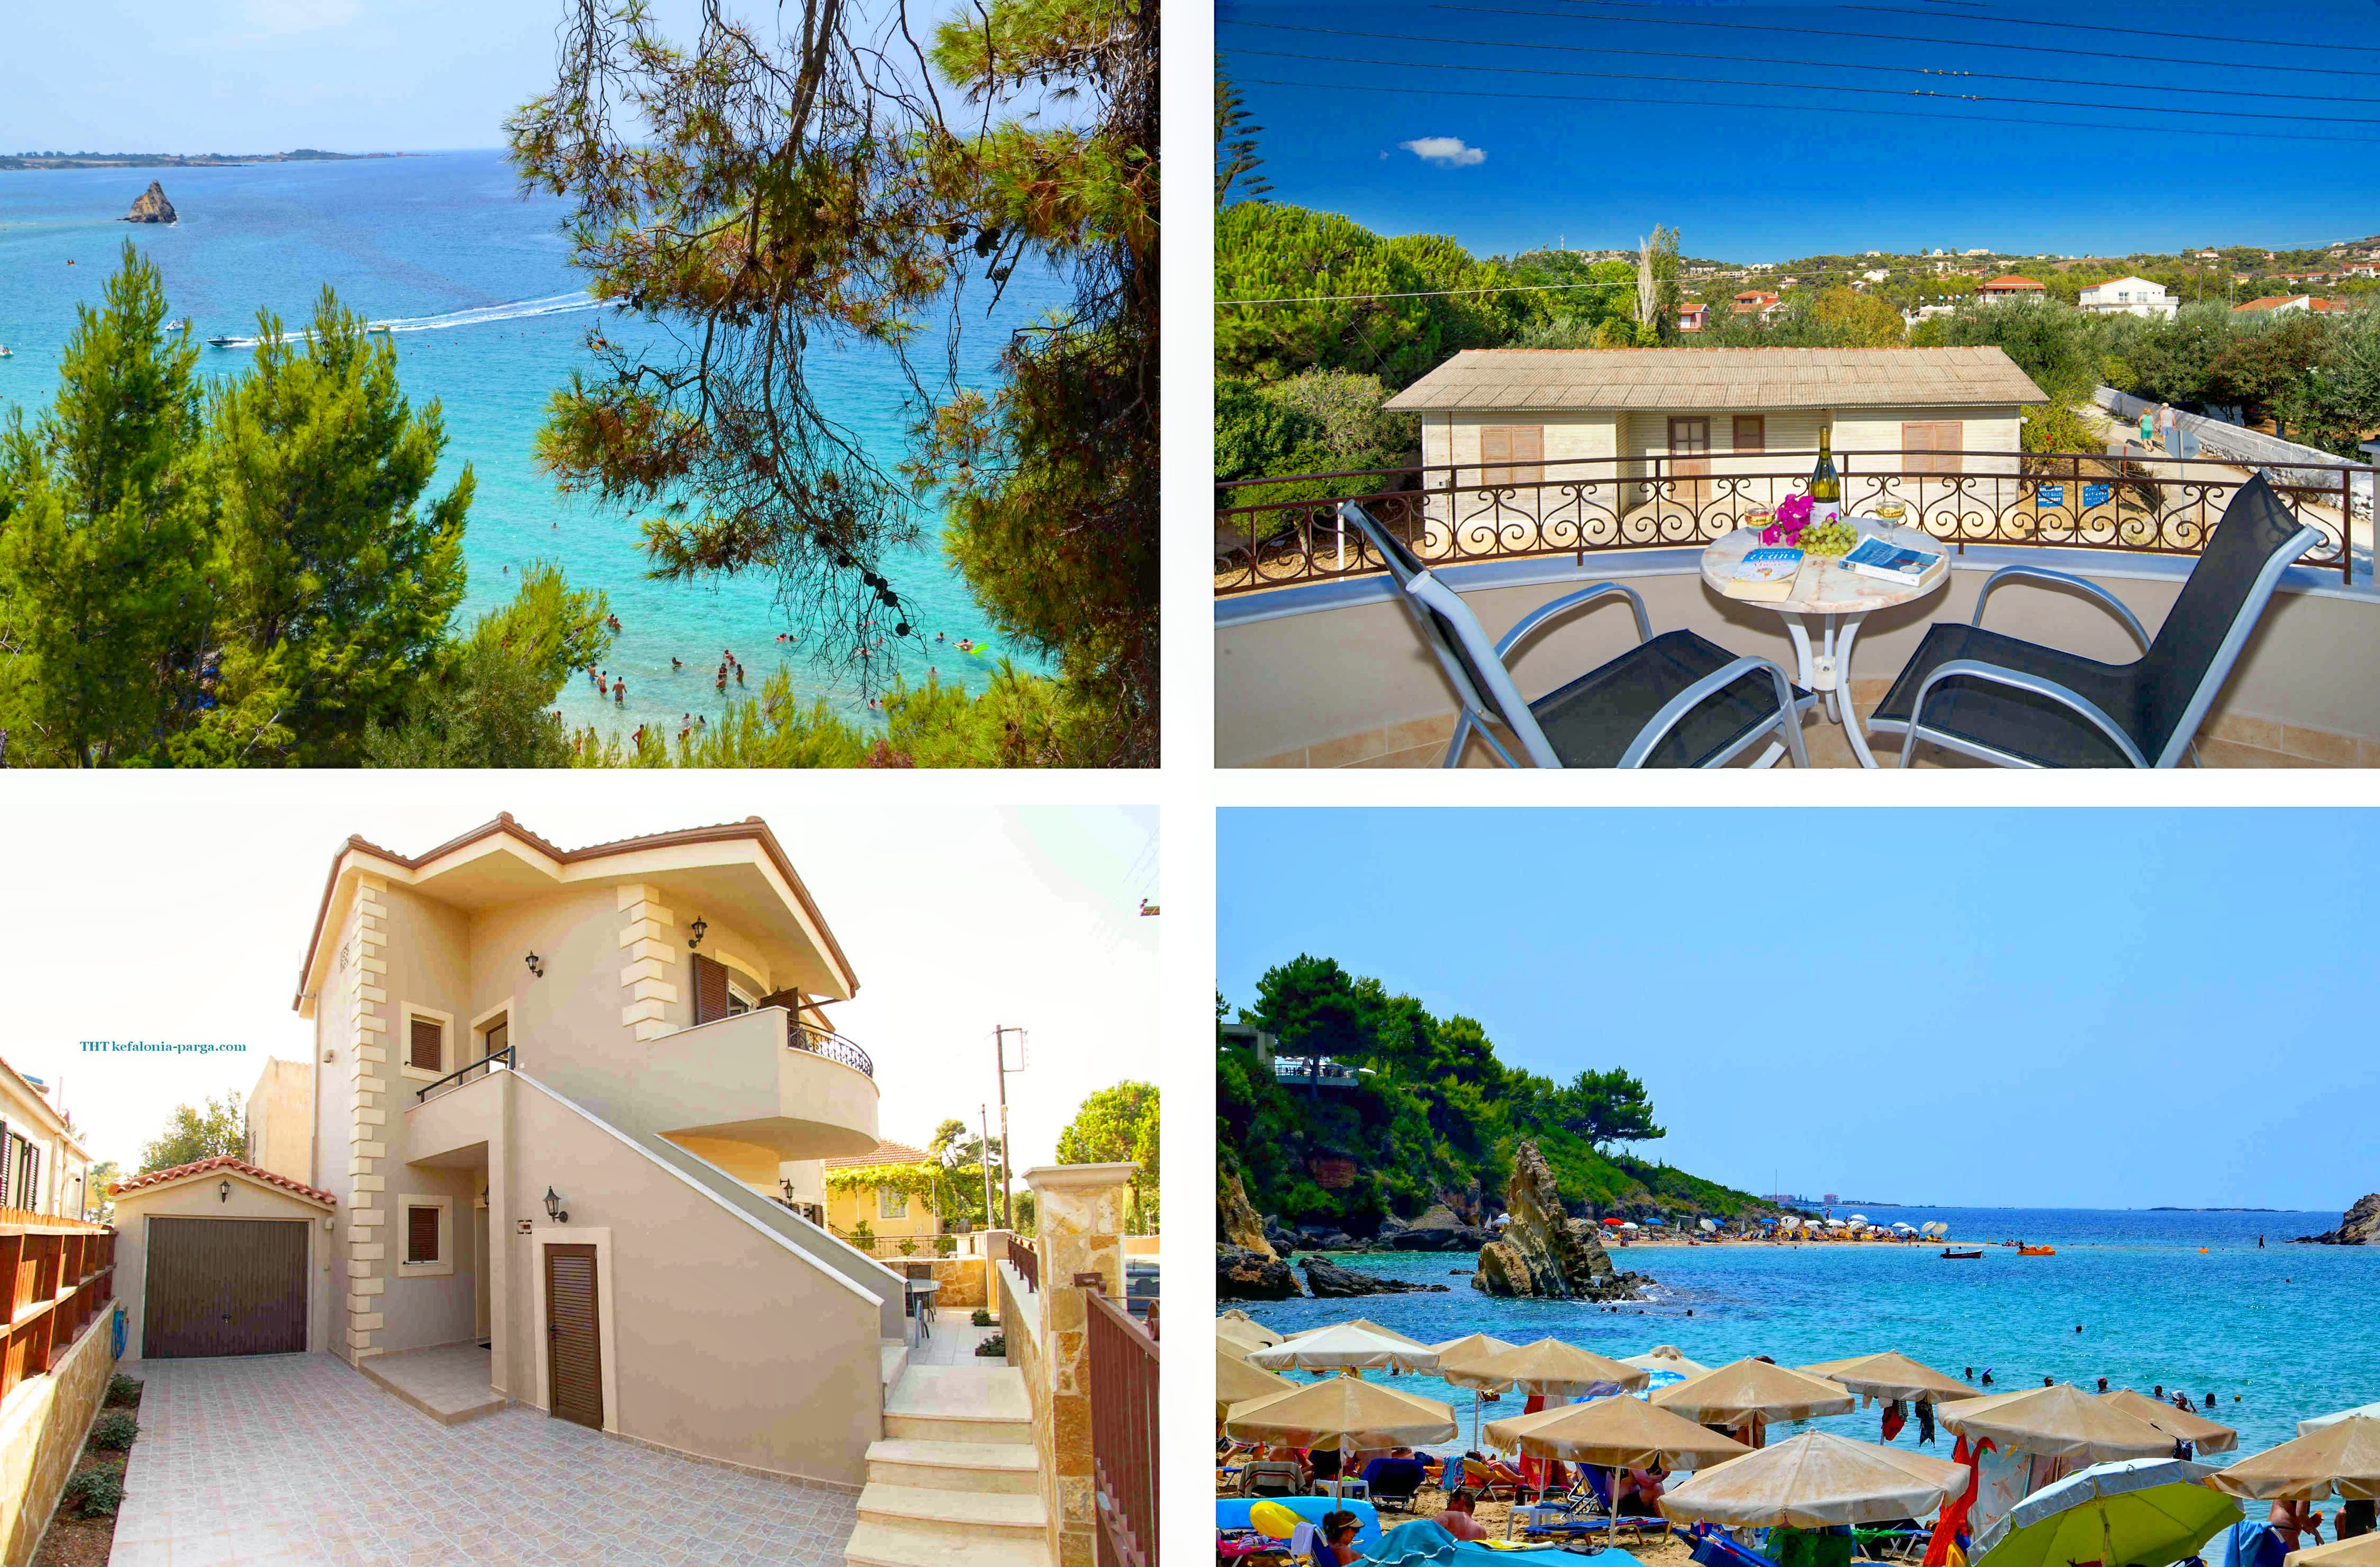 Kefalonia villas: cute 3 bedroom villa with swimming pool, Kefalonia, Greece. Kefalonia hotels.